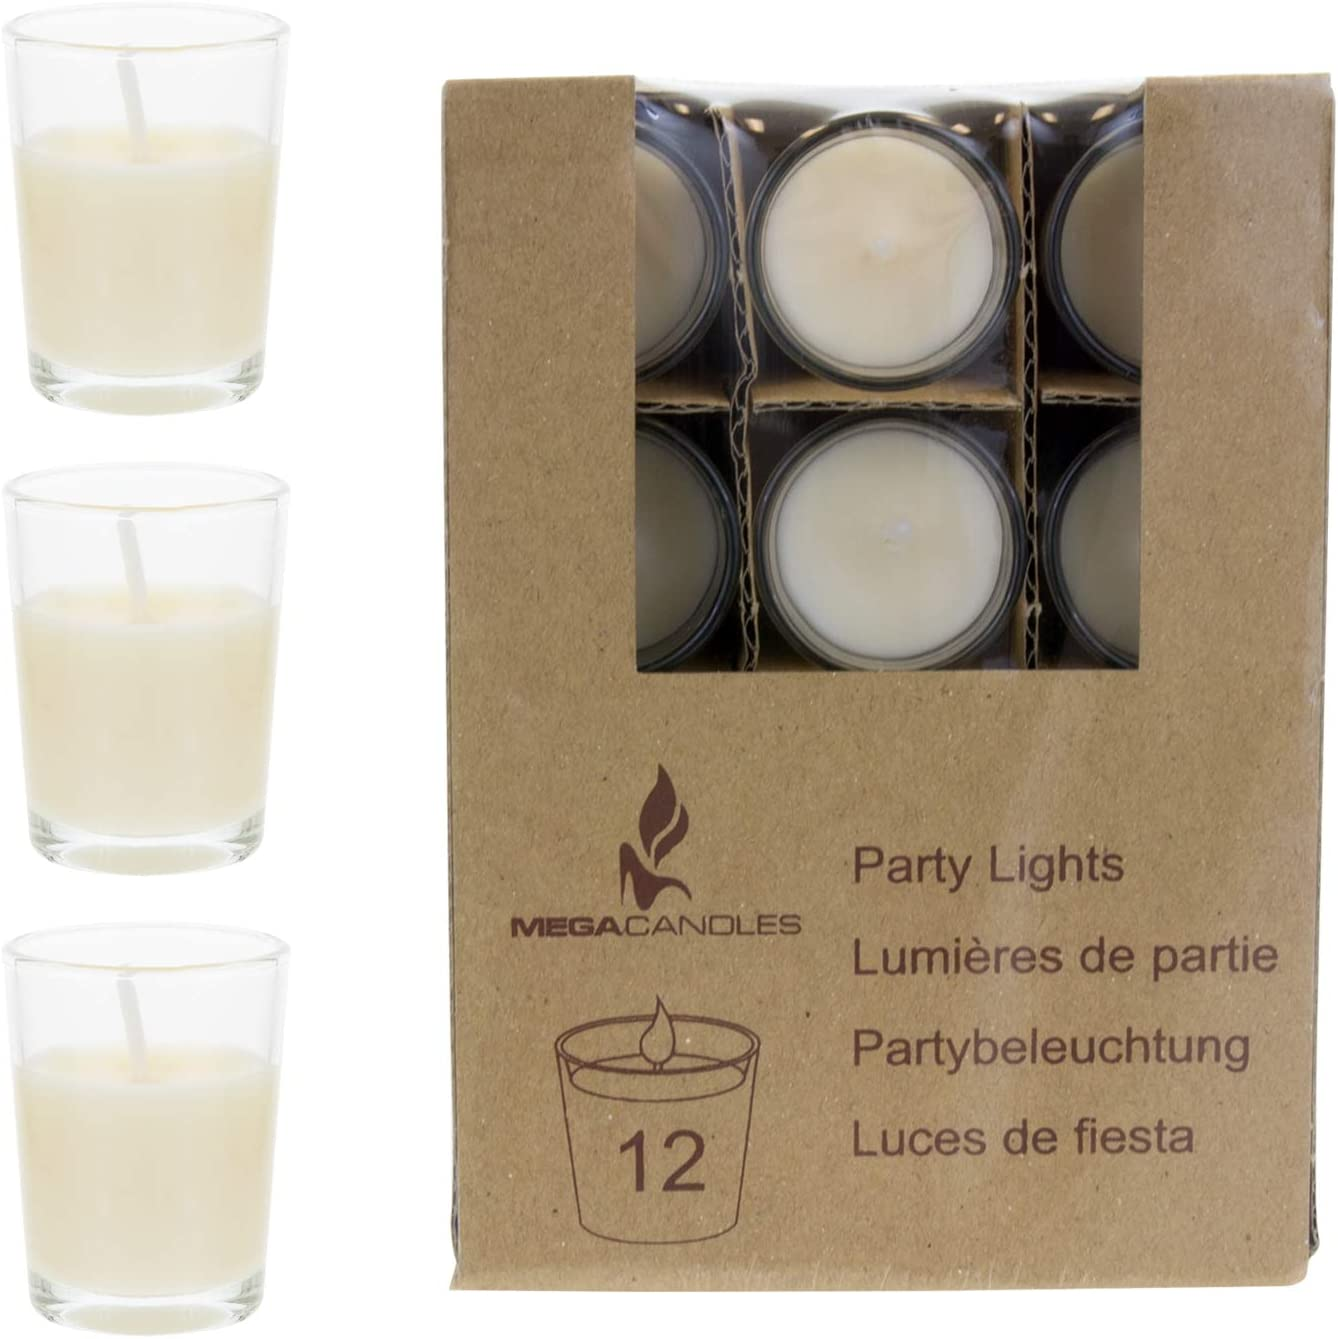 Baby Showers Wedding Receptions Celebrations Mega Candles 12 pcs Unscented Red Glass Container Candle Mini Party Light 5 Hours 1.5 Inch x 1.75 Inch Birthdays Party Favors /& More Home D/écor